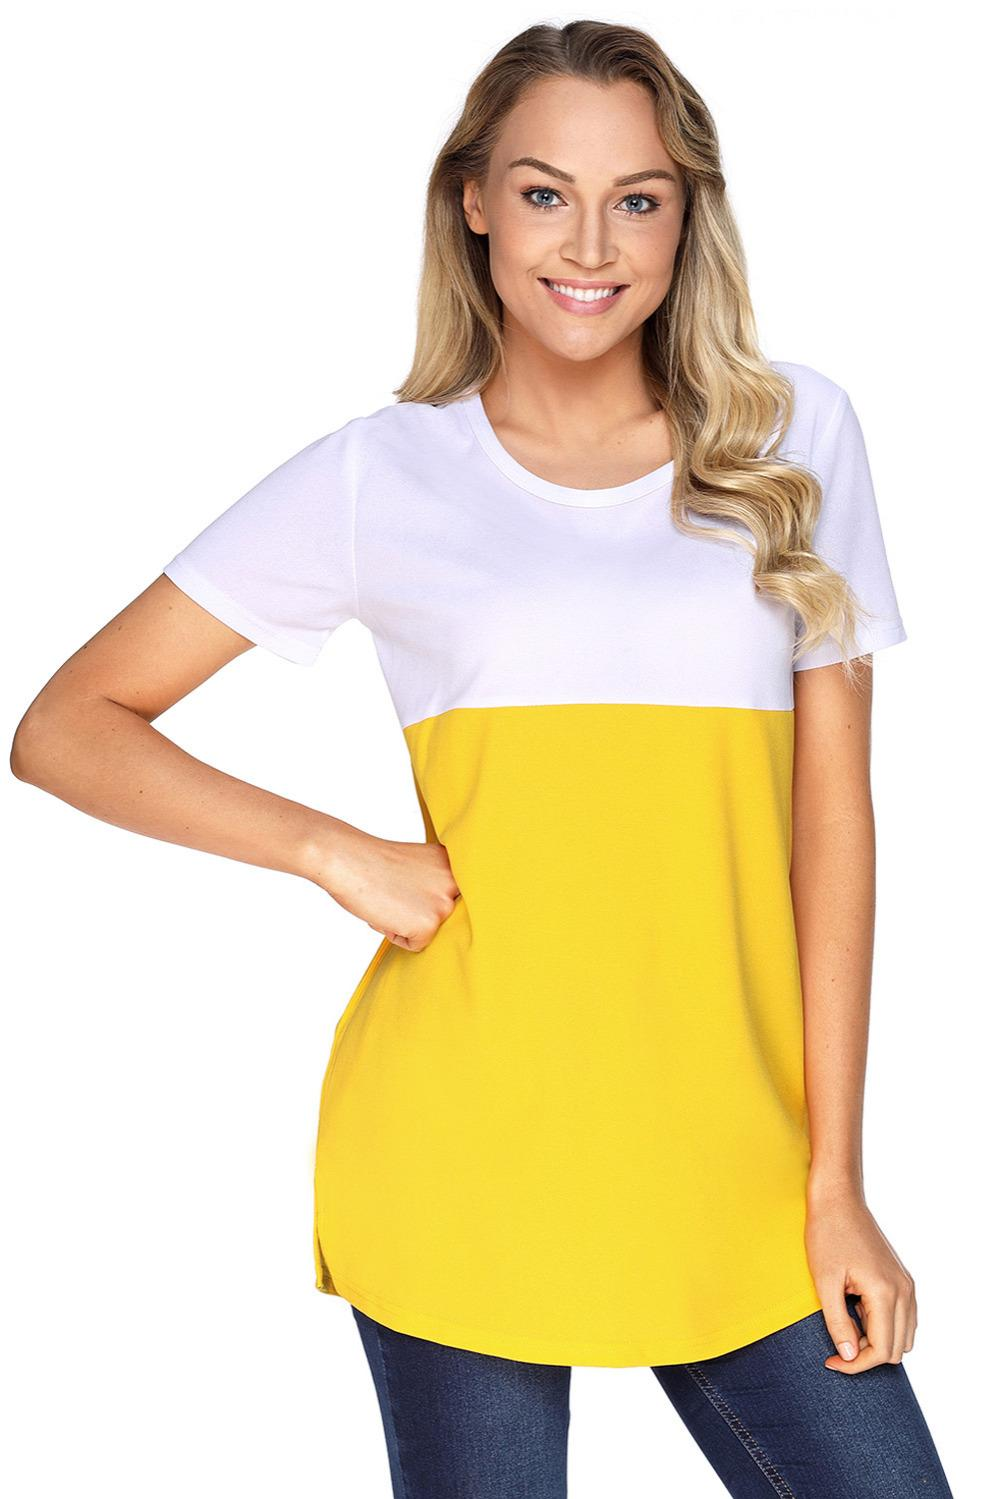 8a86339a535 Summer Women's clothes lady plus size S M L XL XXL t-Shirt modern ladies  Female Mustard White Colorblock Pocket Tunic top 250838